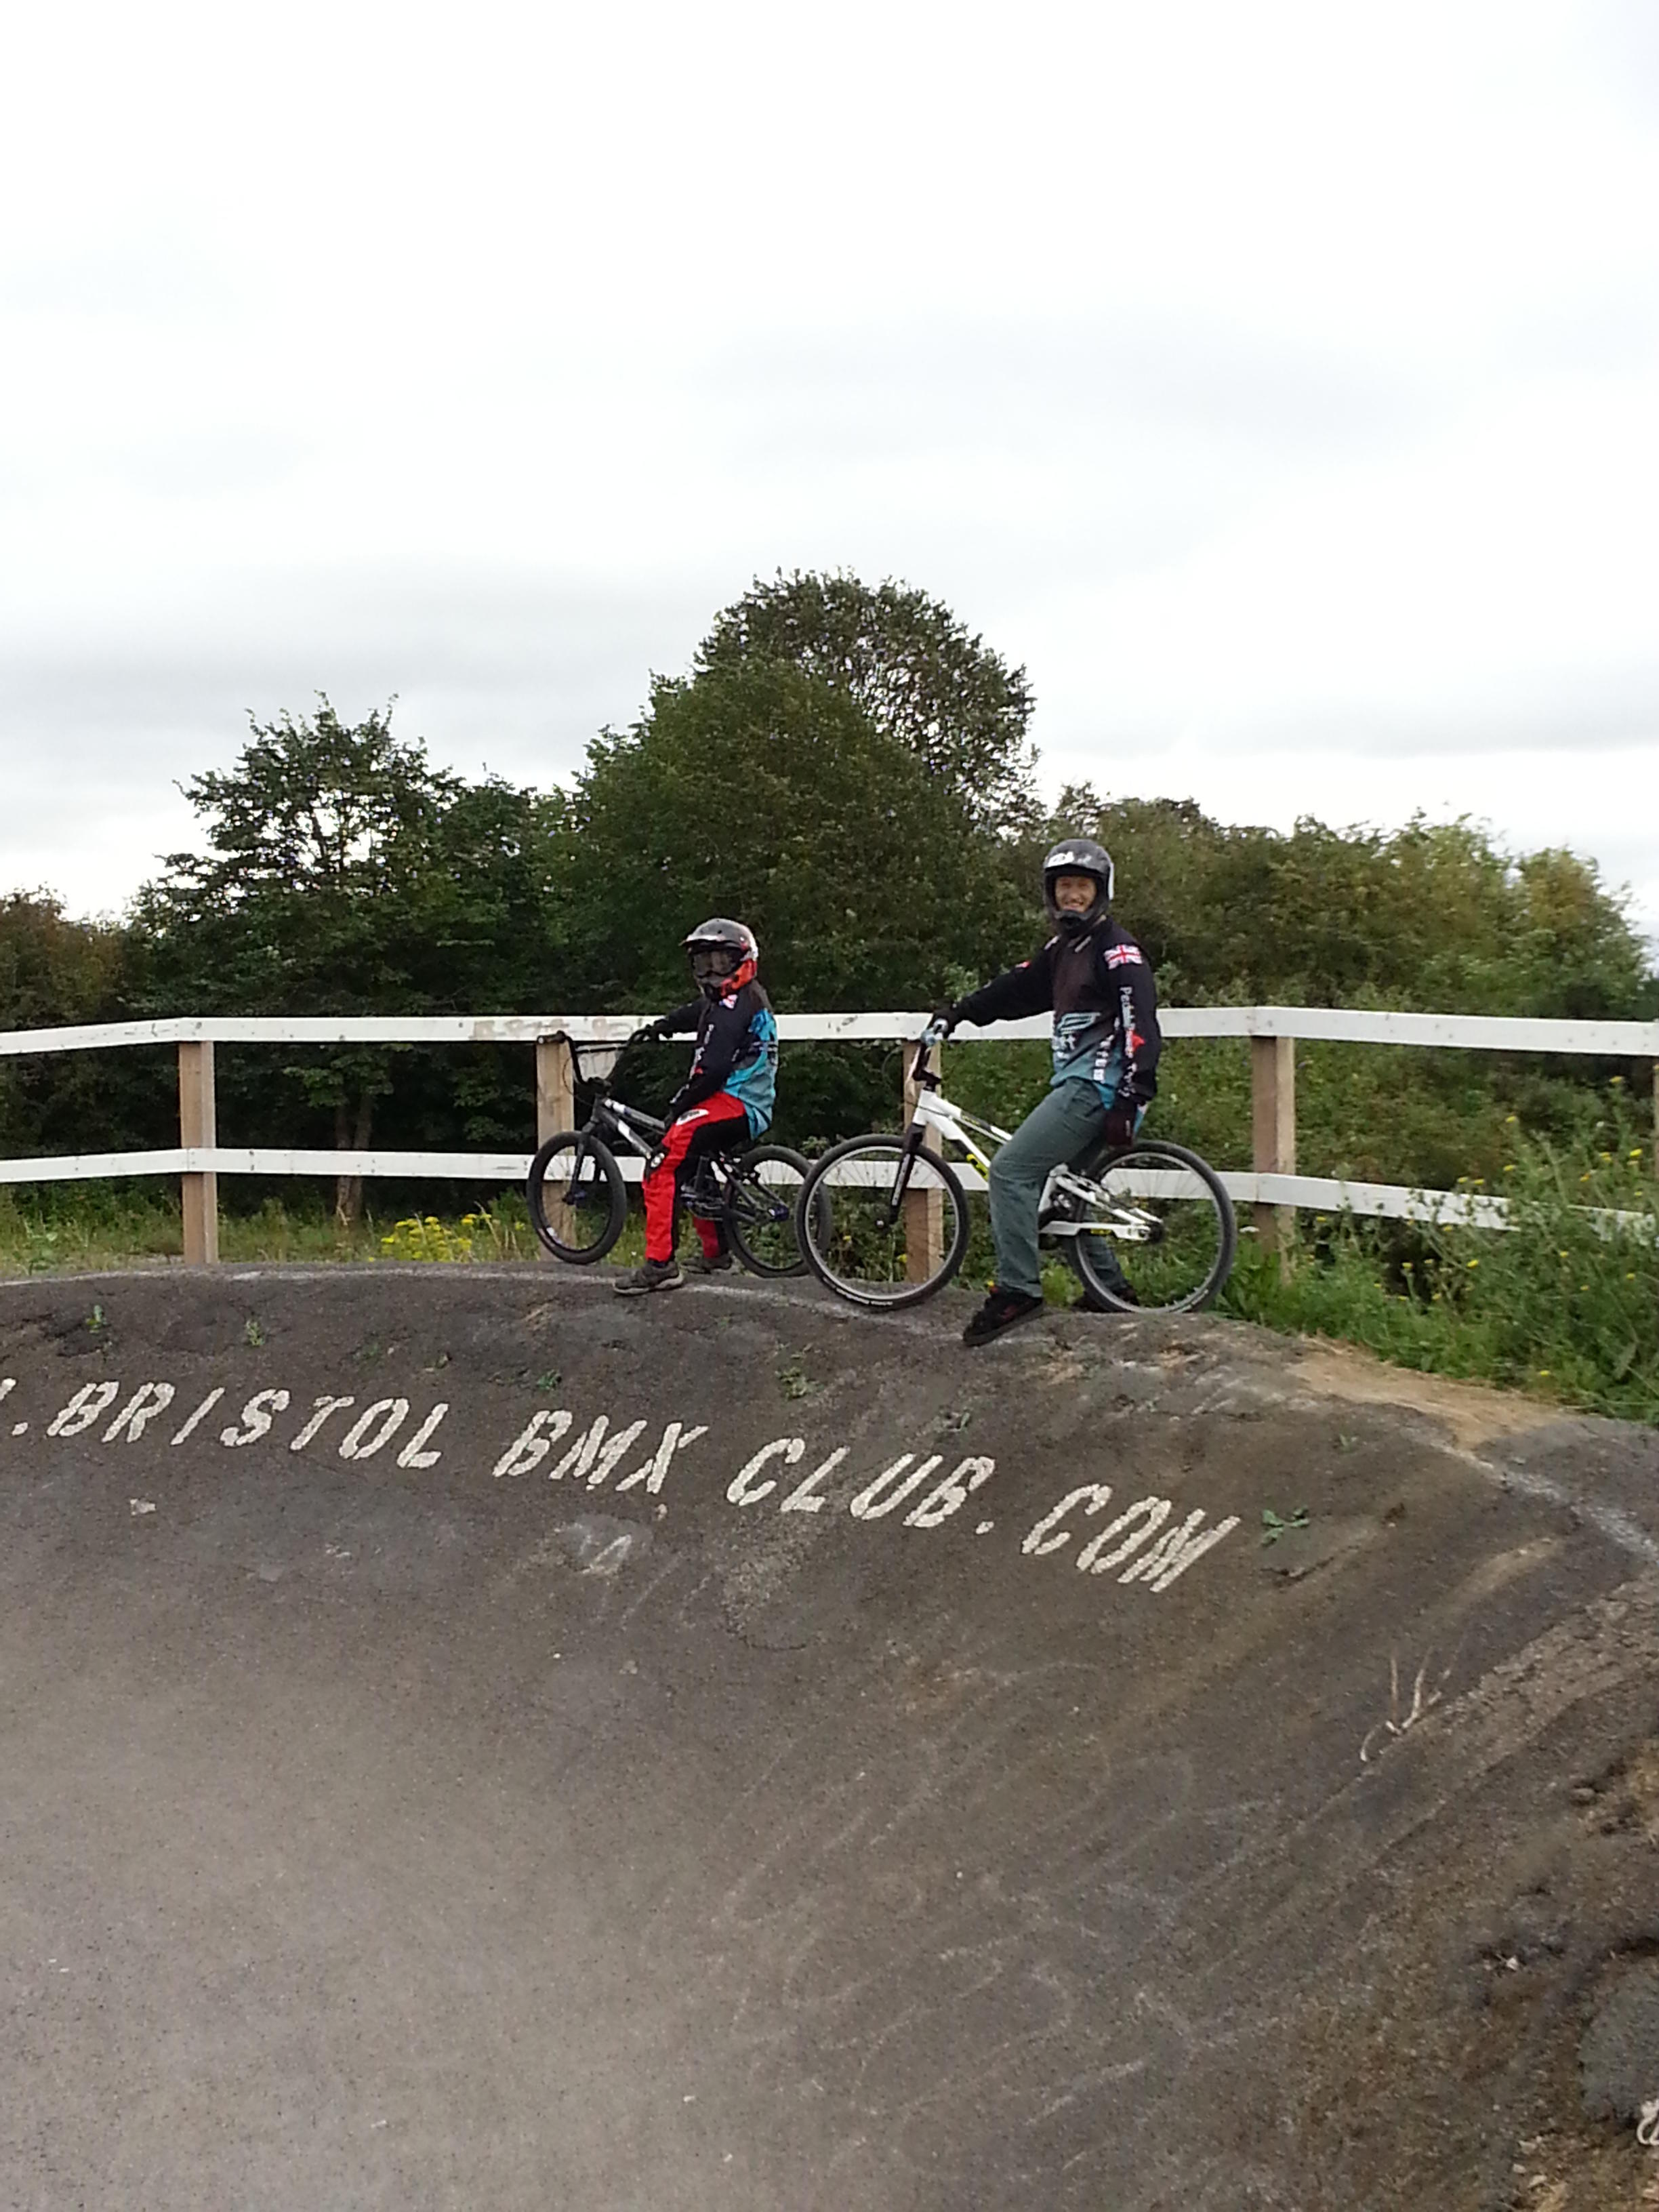 Peter and Fred at Bristol BMX Club track